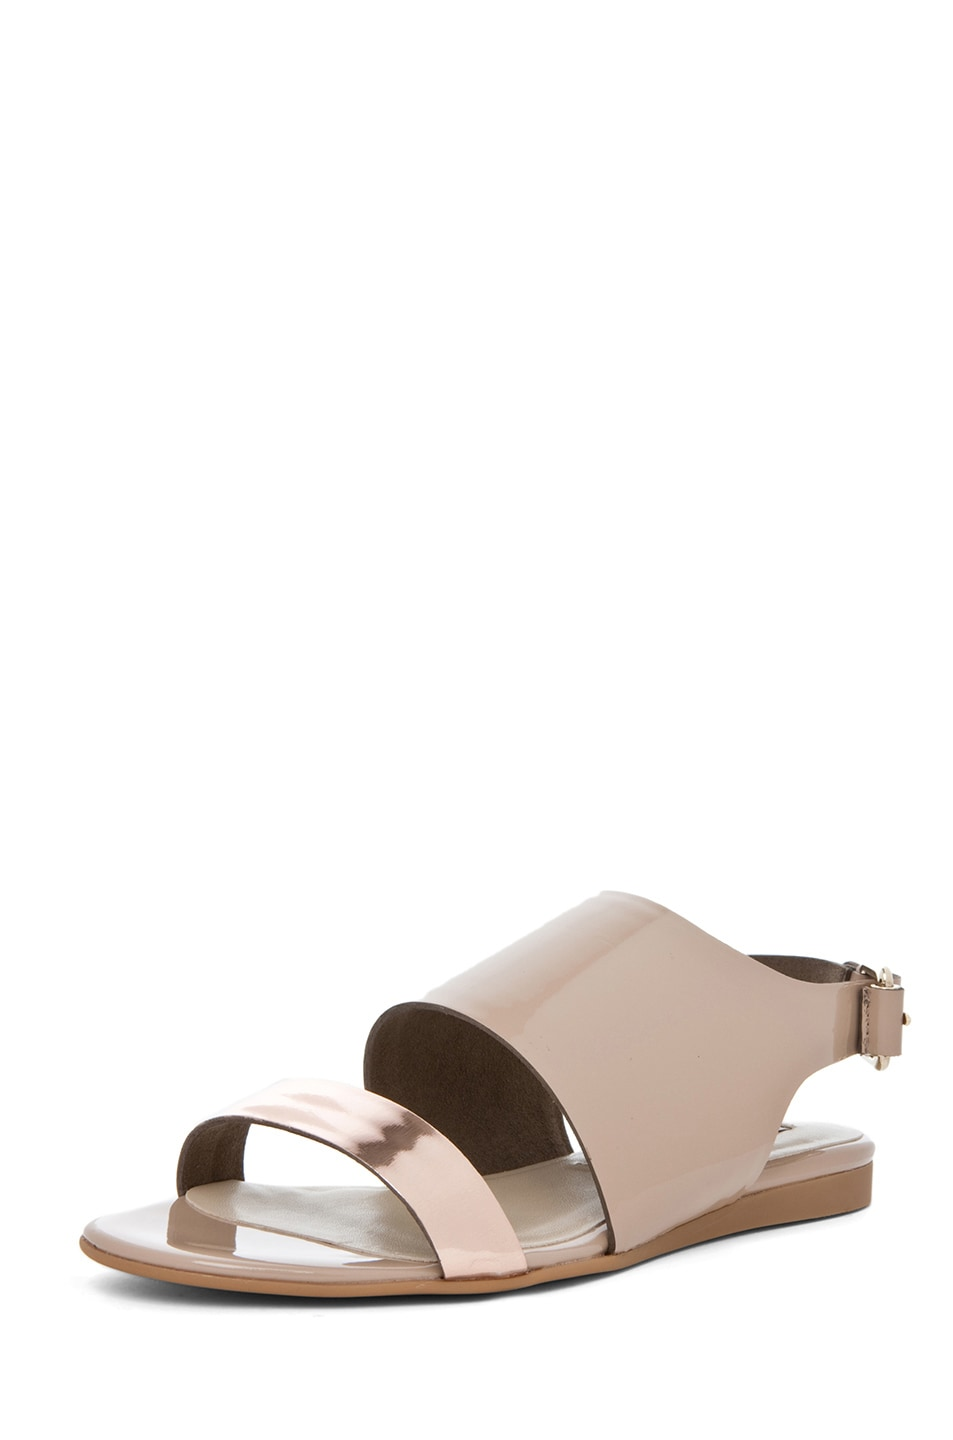 Image 2 of Stella McCartney Sandal in Rose Gold & Desert